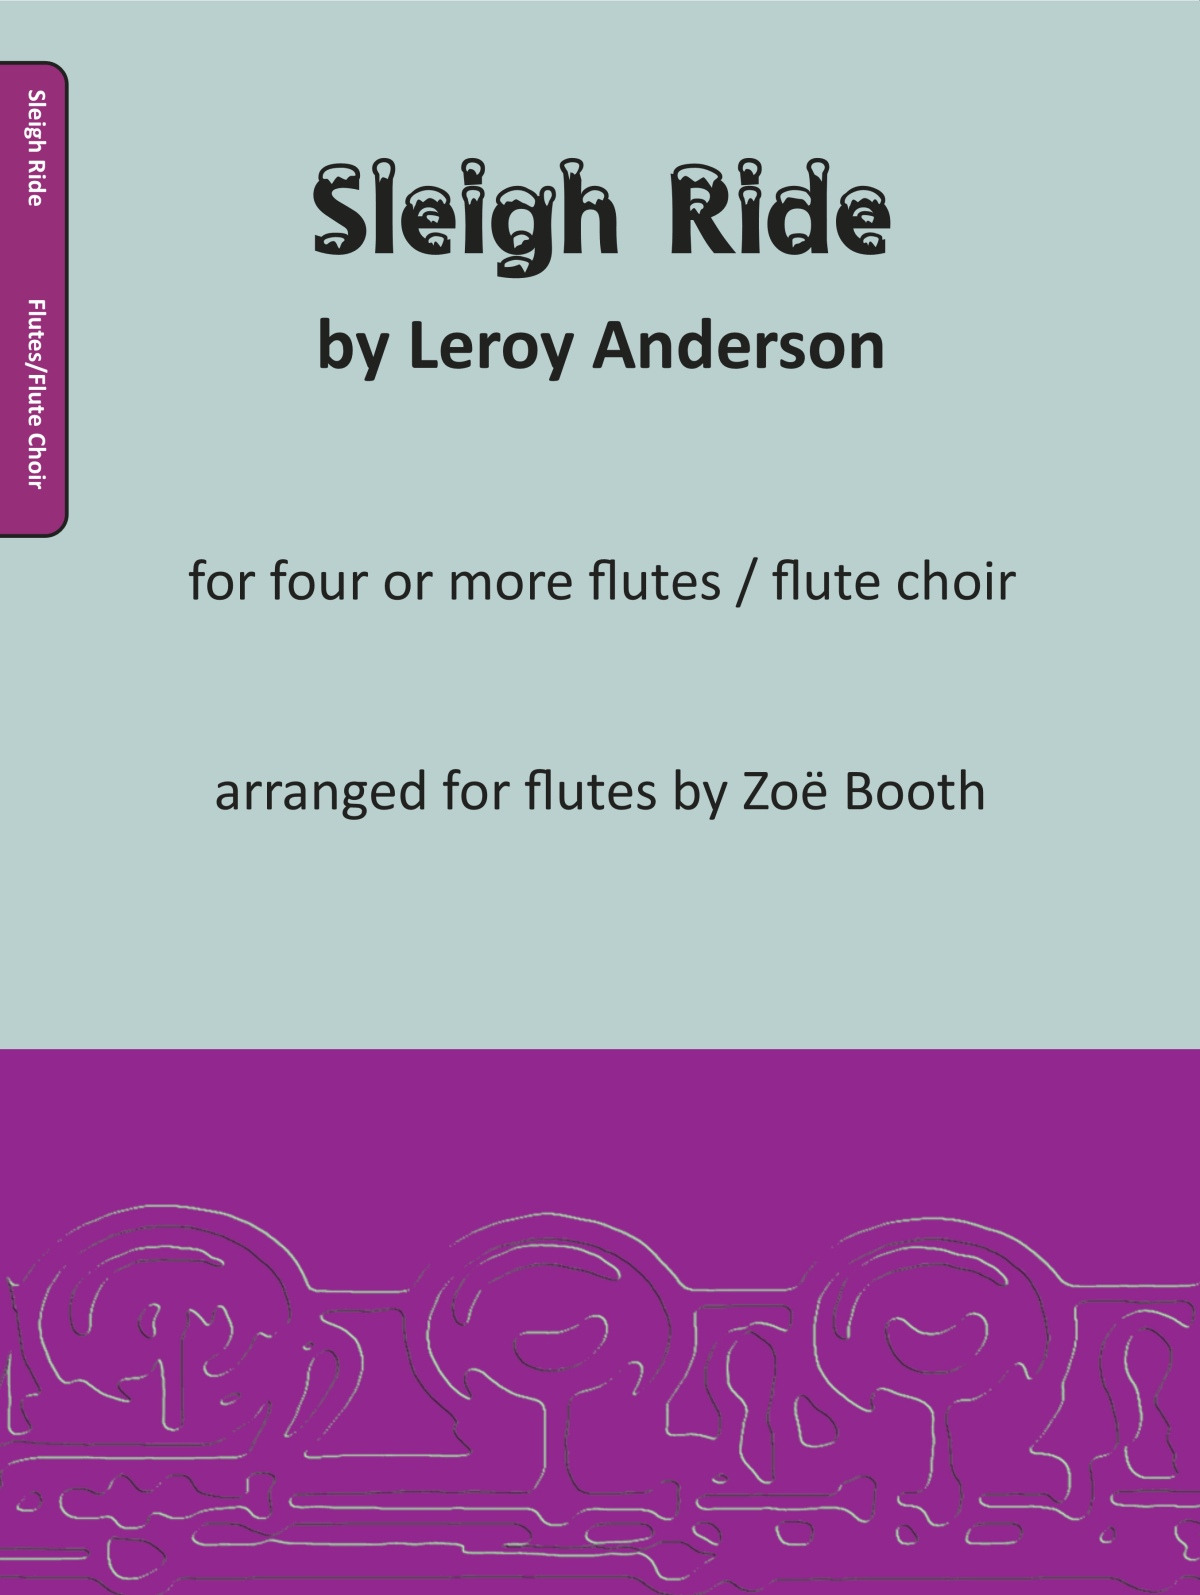 Sleigh Ride by Leroy Anderson,  arranged by Zoë Booth for four or more flutes/flute choir